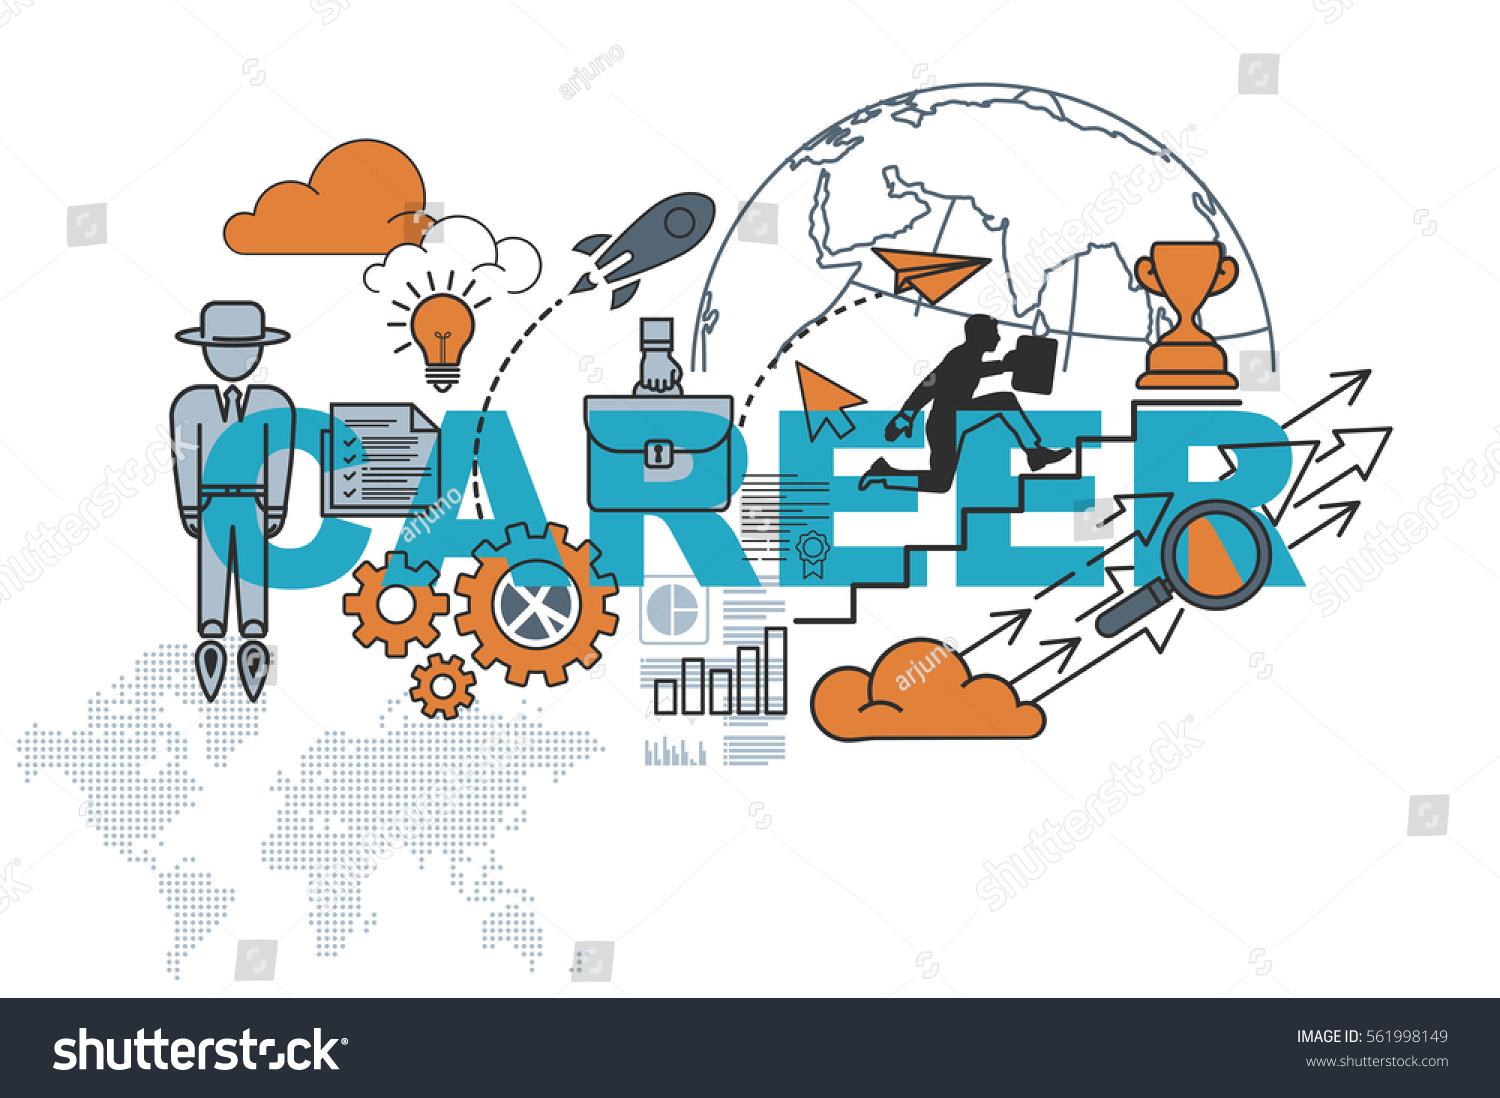 Career Website Banner Concept Thin Line Stock Vector Royalty Free 561998149